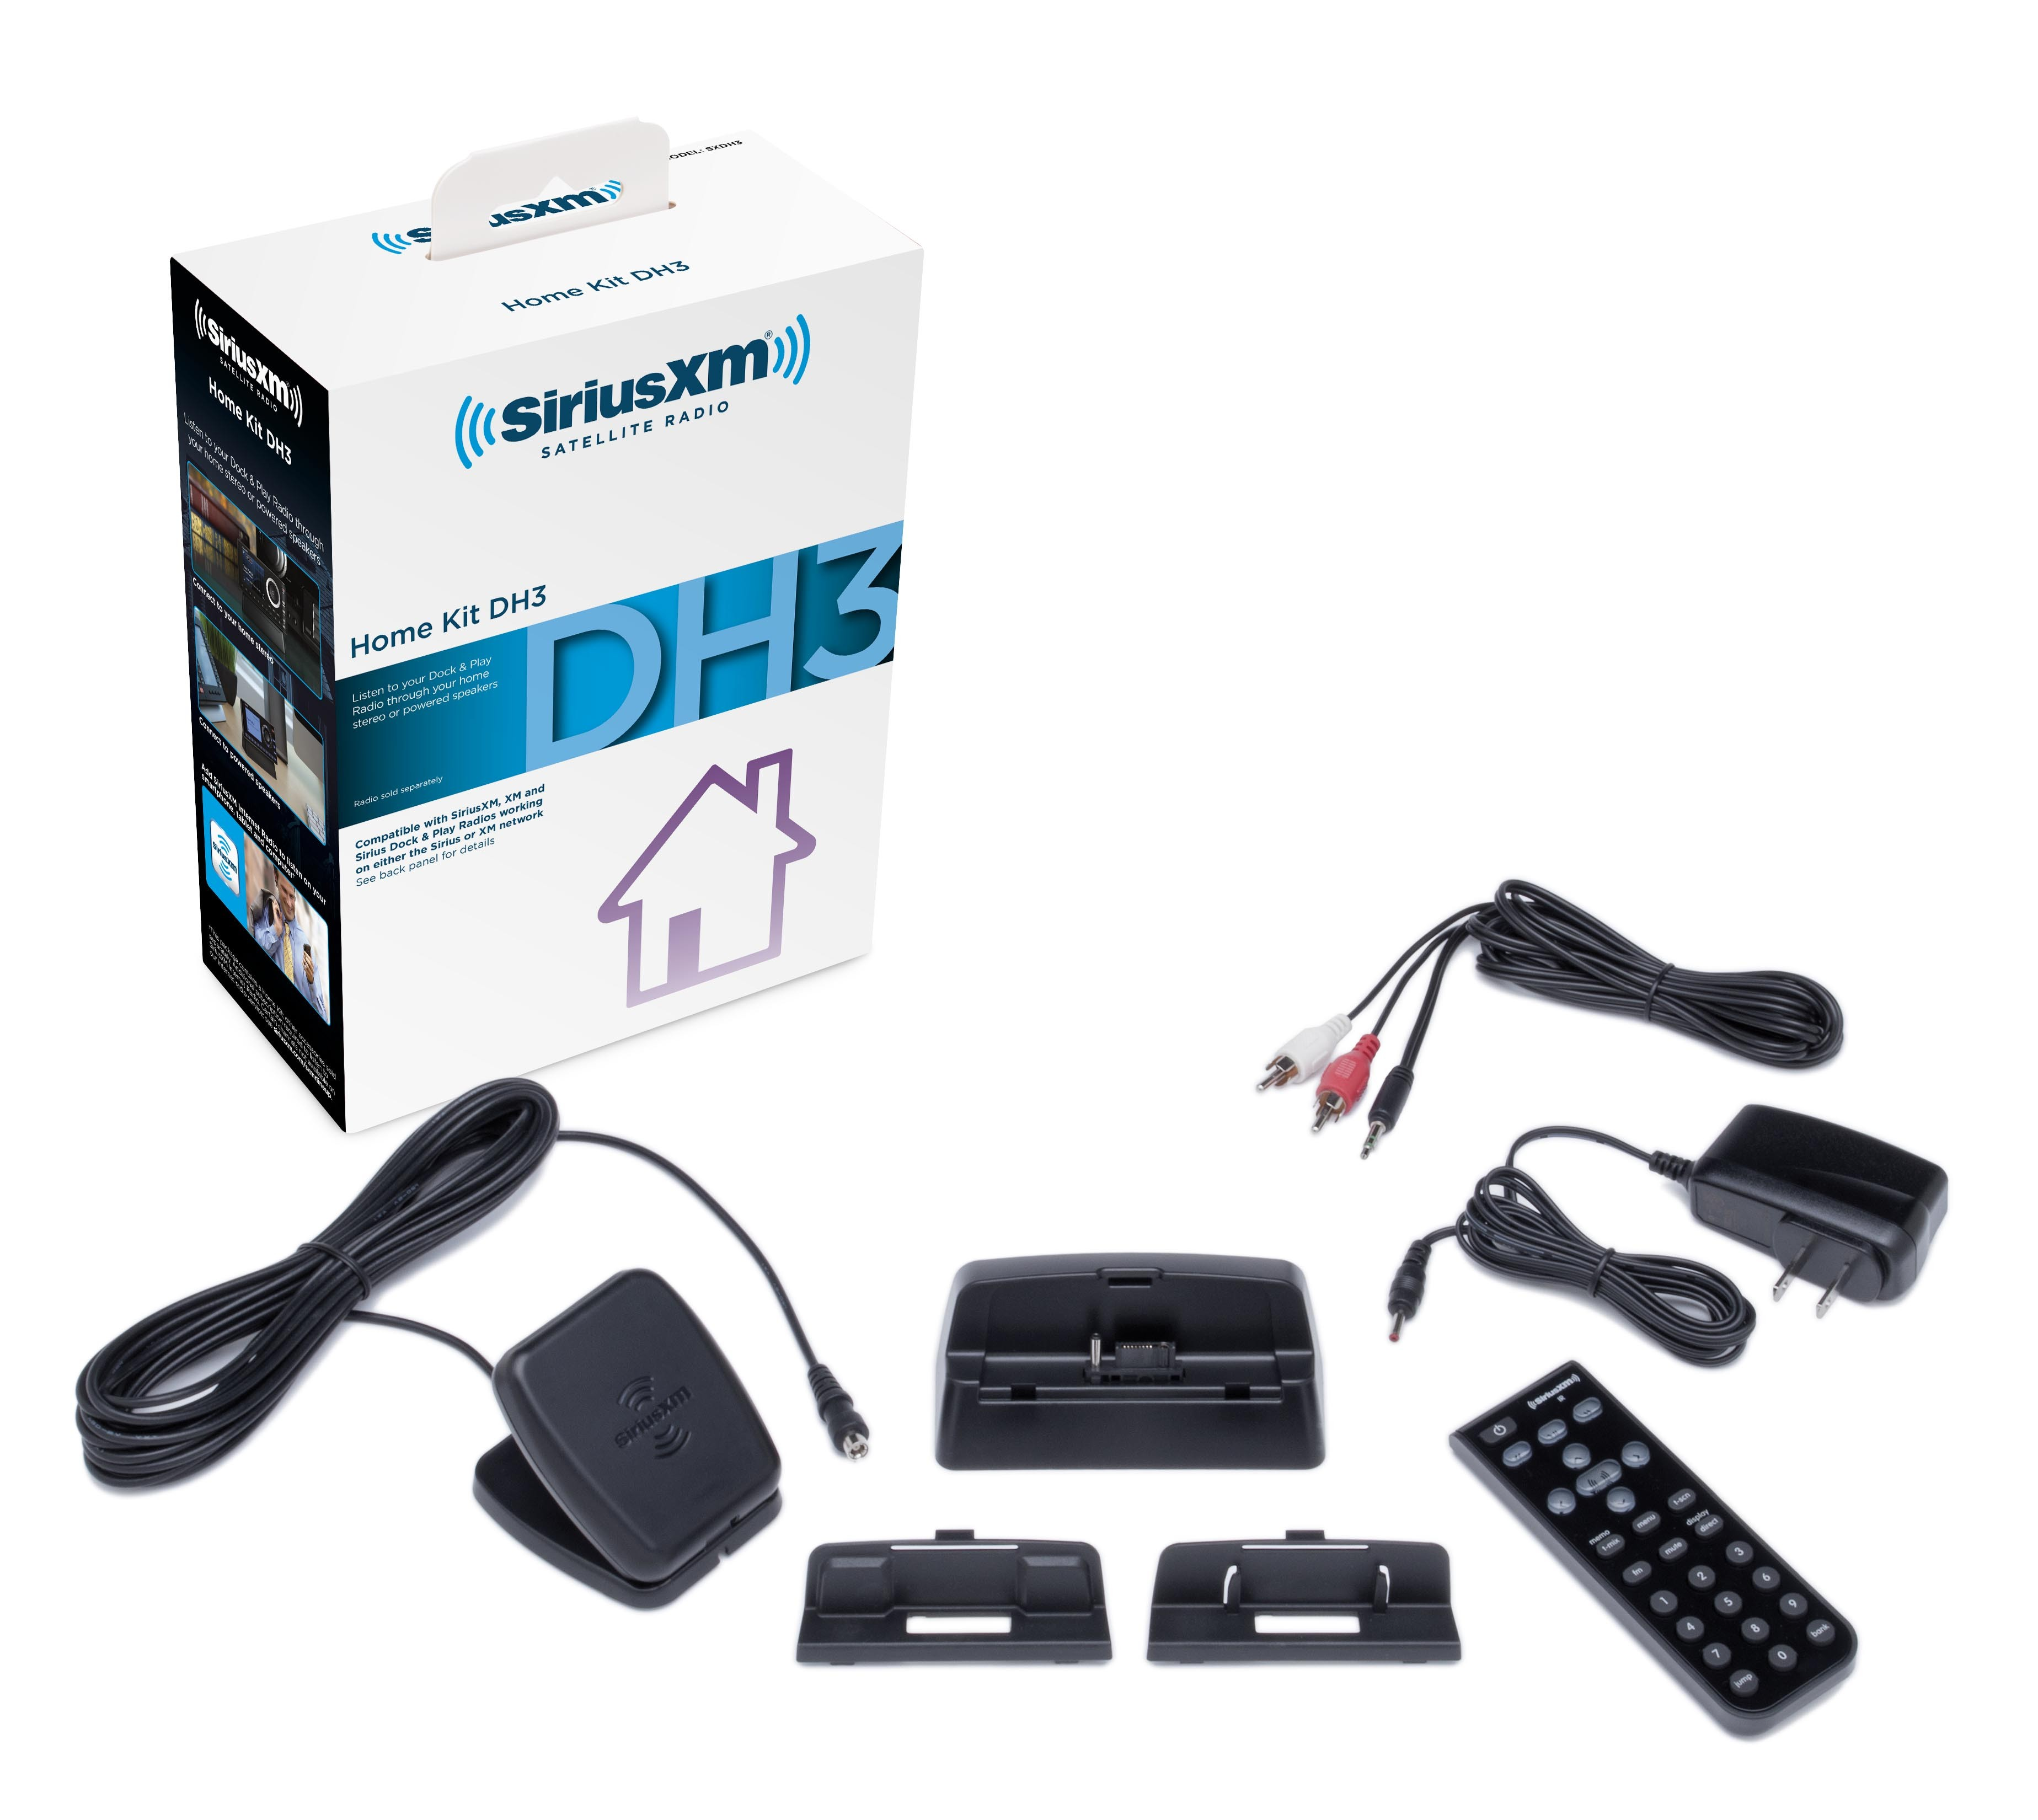 Siriusxm Powerconnect Car Cradle Sdpiv1 furthermore Satellite Cable Wire Spec moreover 290935349437 additionally Xm Xmicro2 Vehicle Antenna Xmicro2 moreover Viewtopic. on sirius radio marine antenna replacement